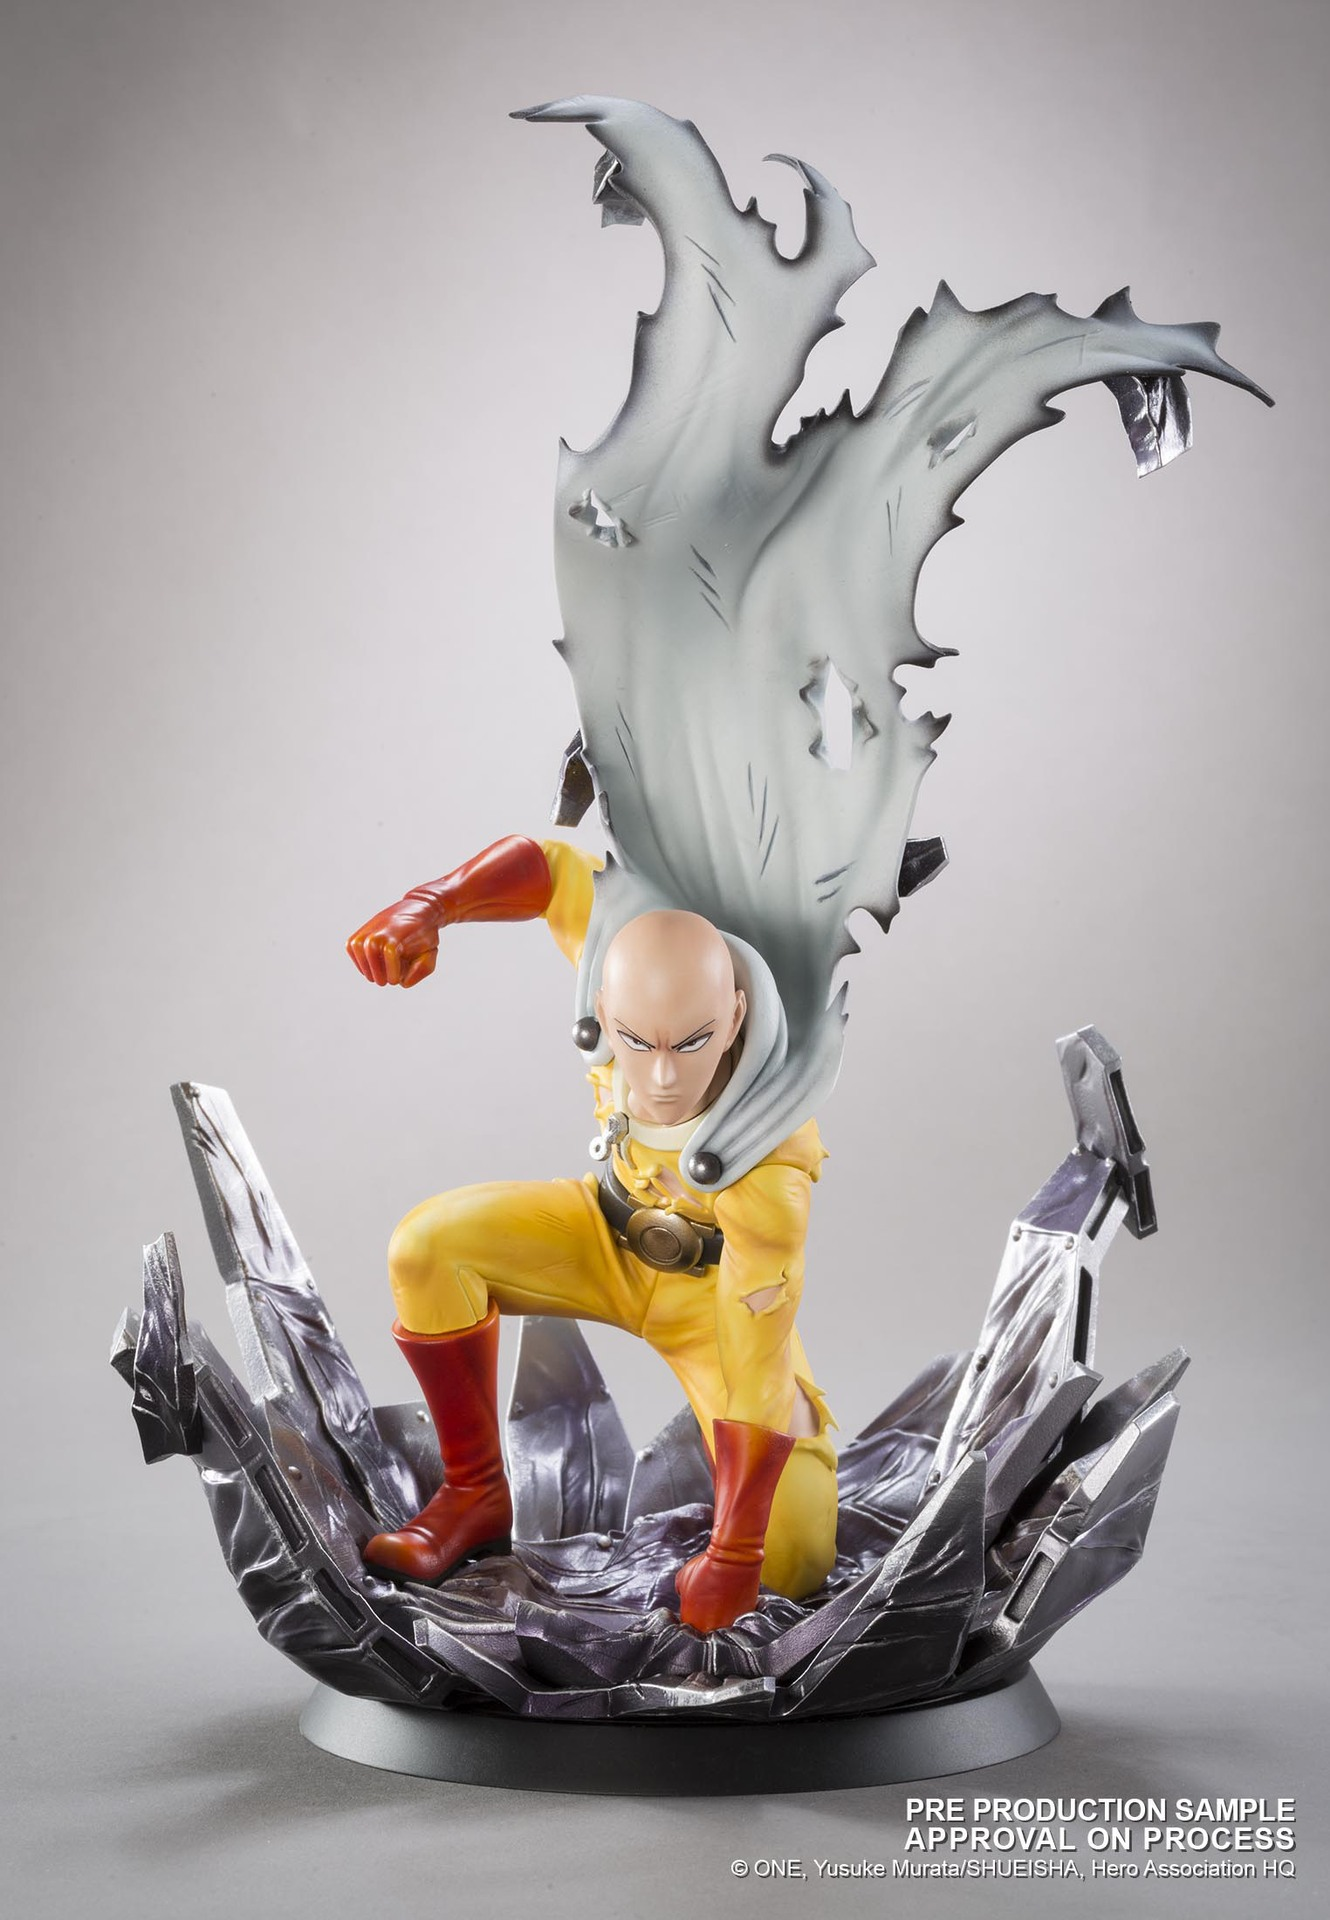 Hot-selling 1pcs 24CM pvc Japanese anime figure Tsume T ONE PUNCH-MAN Saitama action figure collectible model toys brinquedos hot 1pcs 28cm pvc japanese sexy anime figure dragon toy tag policwoman action figure collectible model toys brinquedos